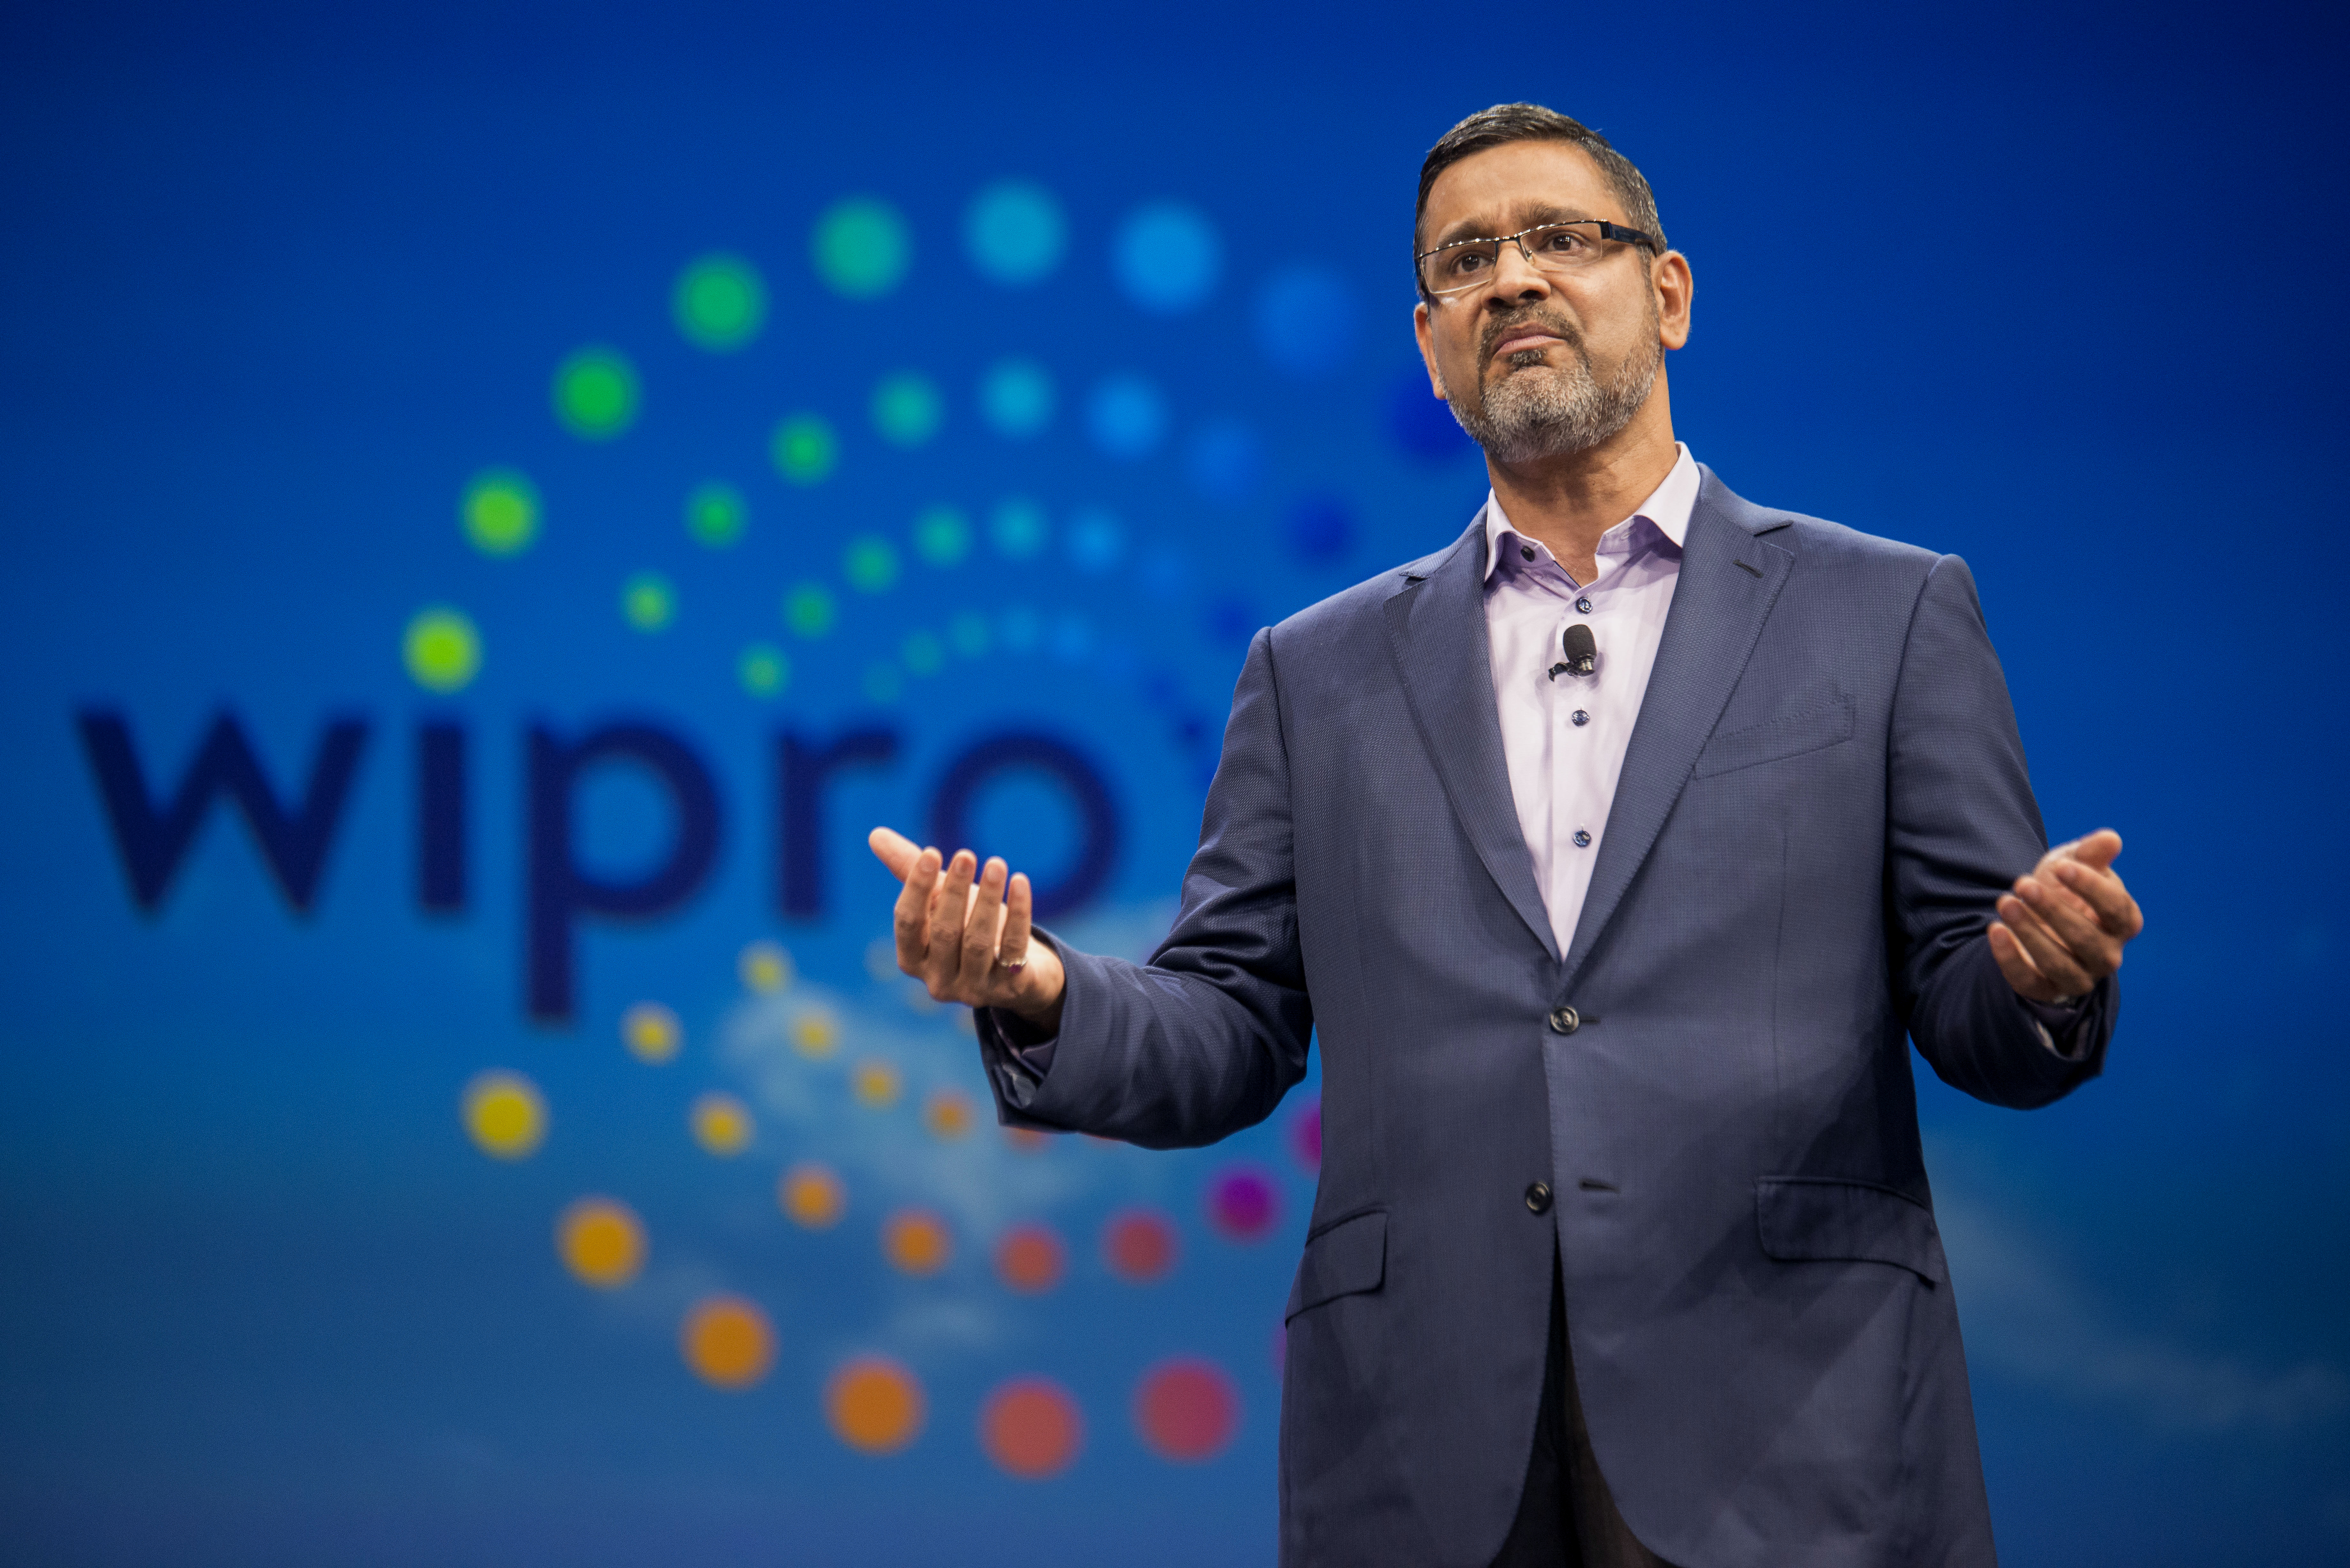 Abidali Neemuchwala, chief executive officer of Wipro.